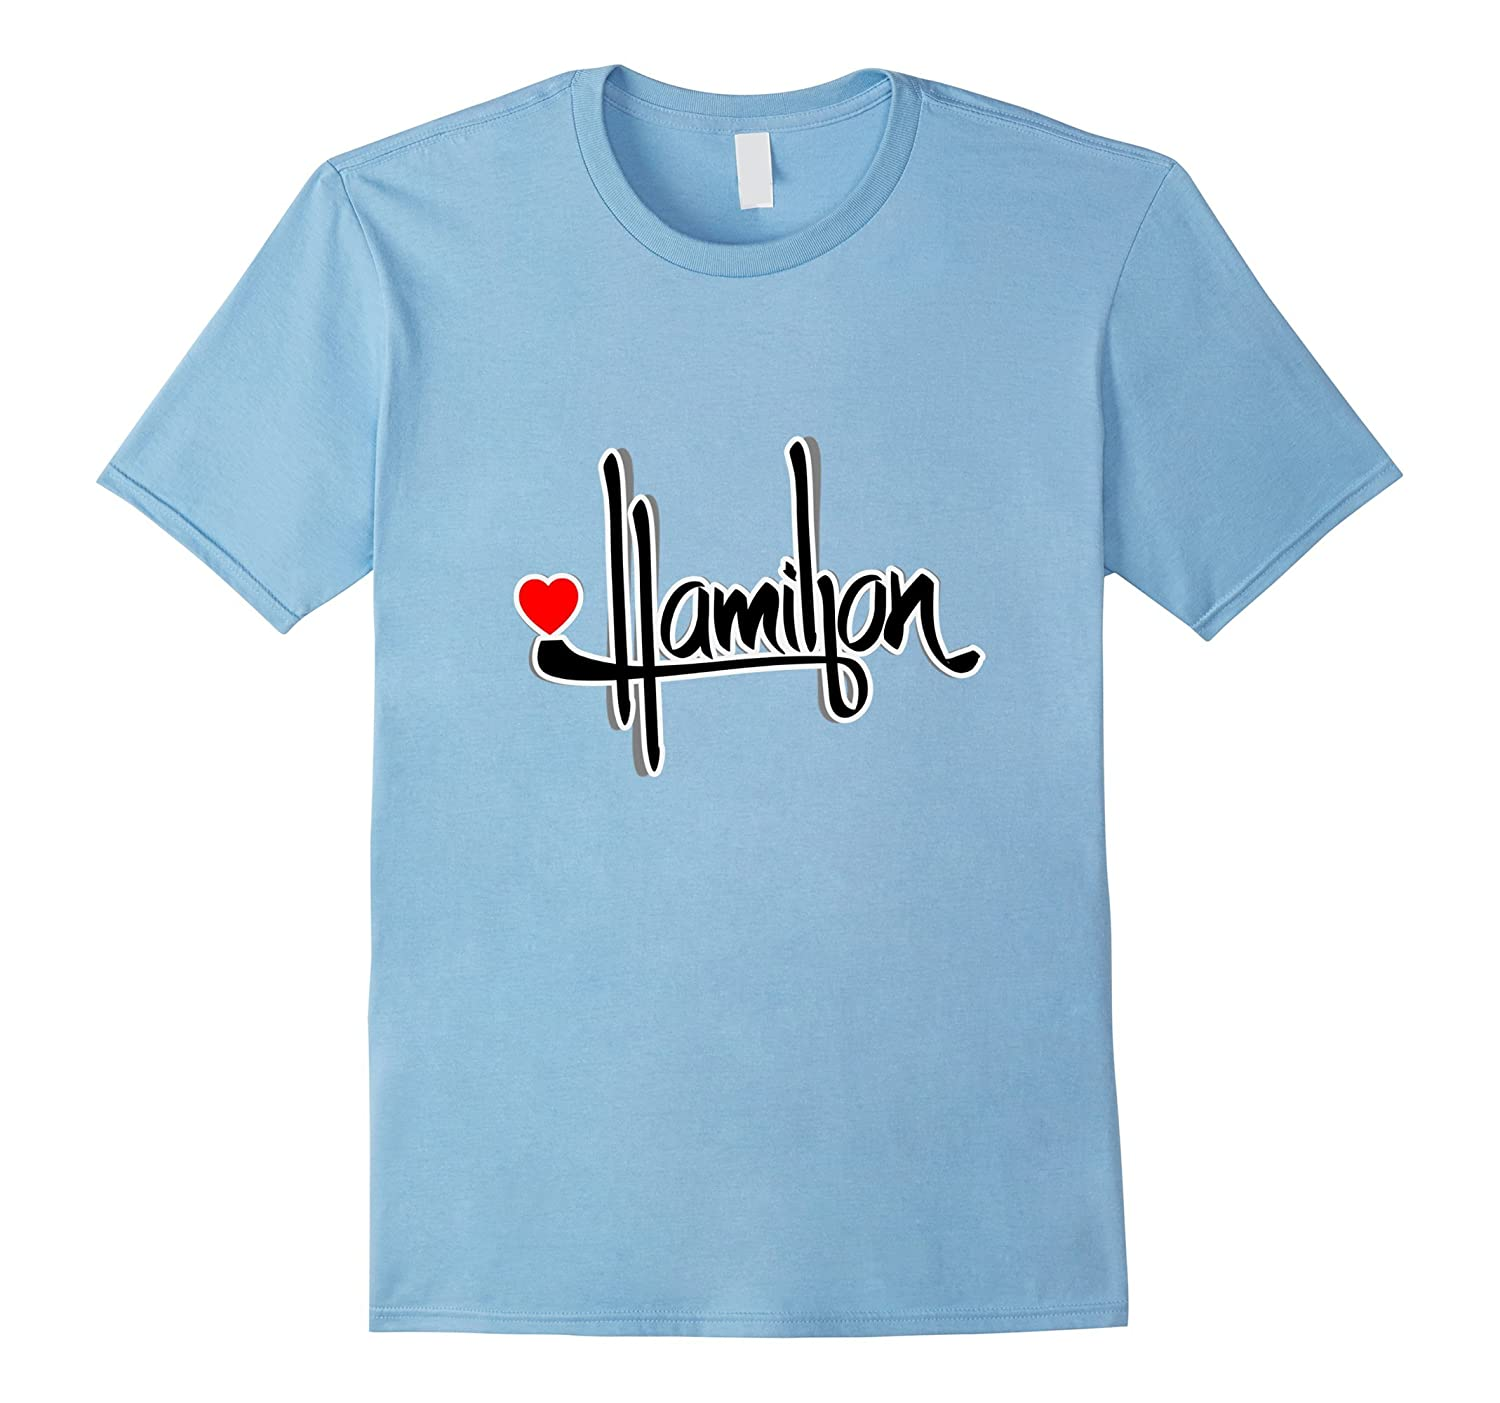 I Love Hamilton - LIMITED EDITION T-Shirt for Girls and Boys-TD